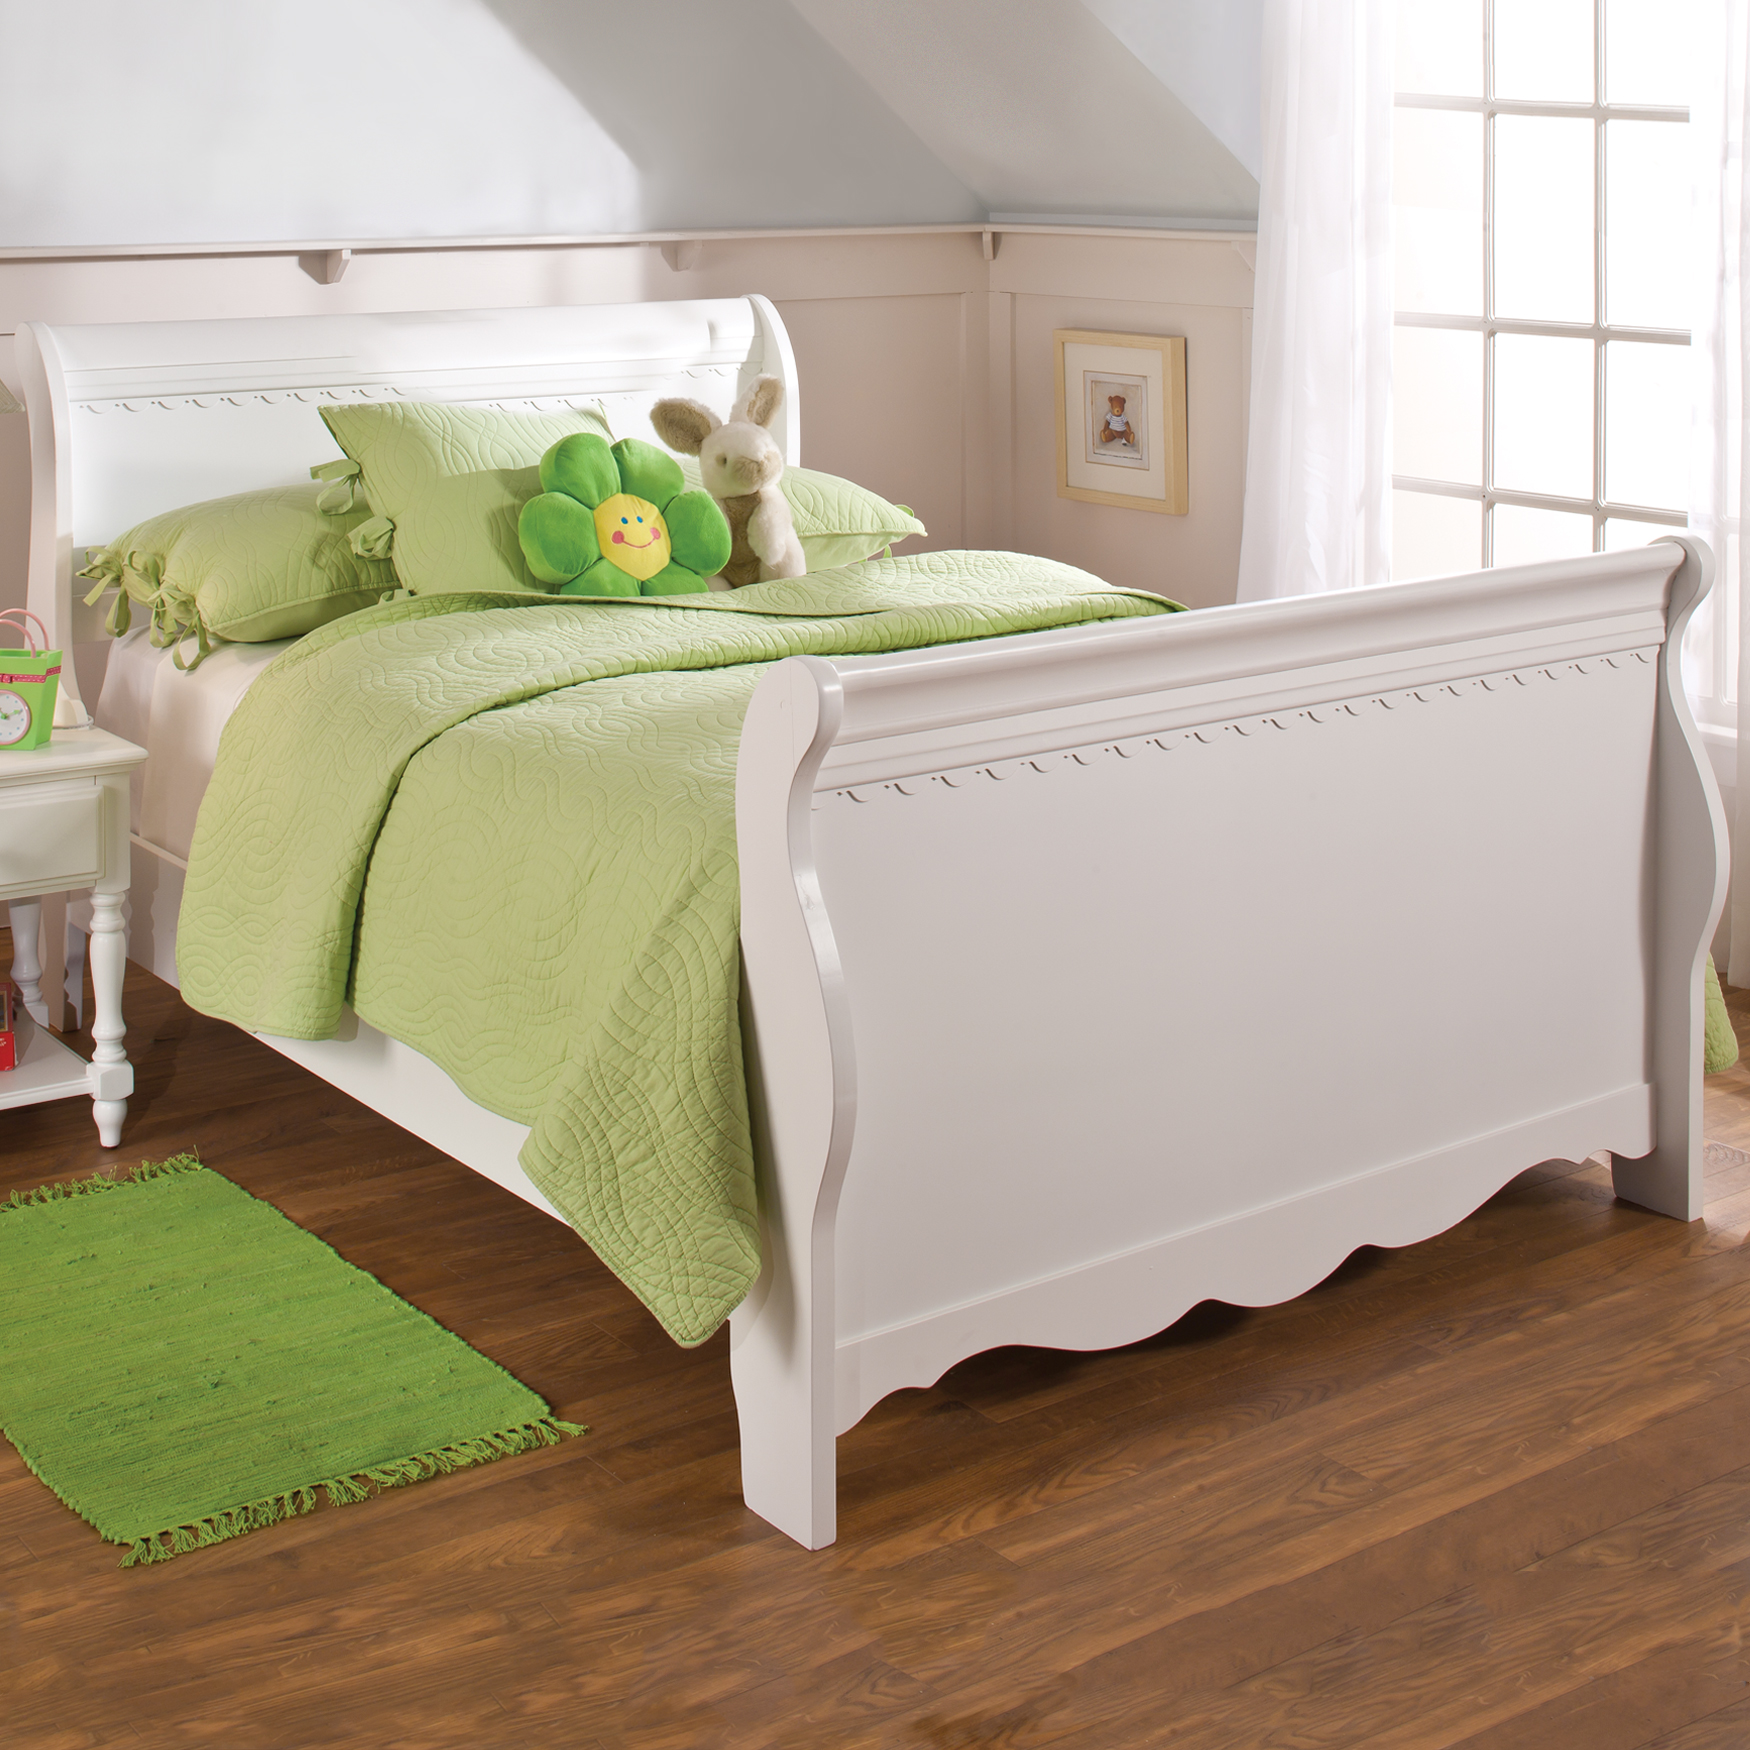 Full Bed Set with Side Rails, 85½'Lx57¼Wx44'H, WHITE